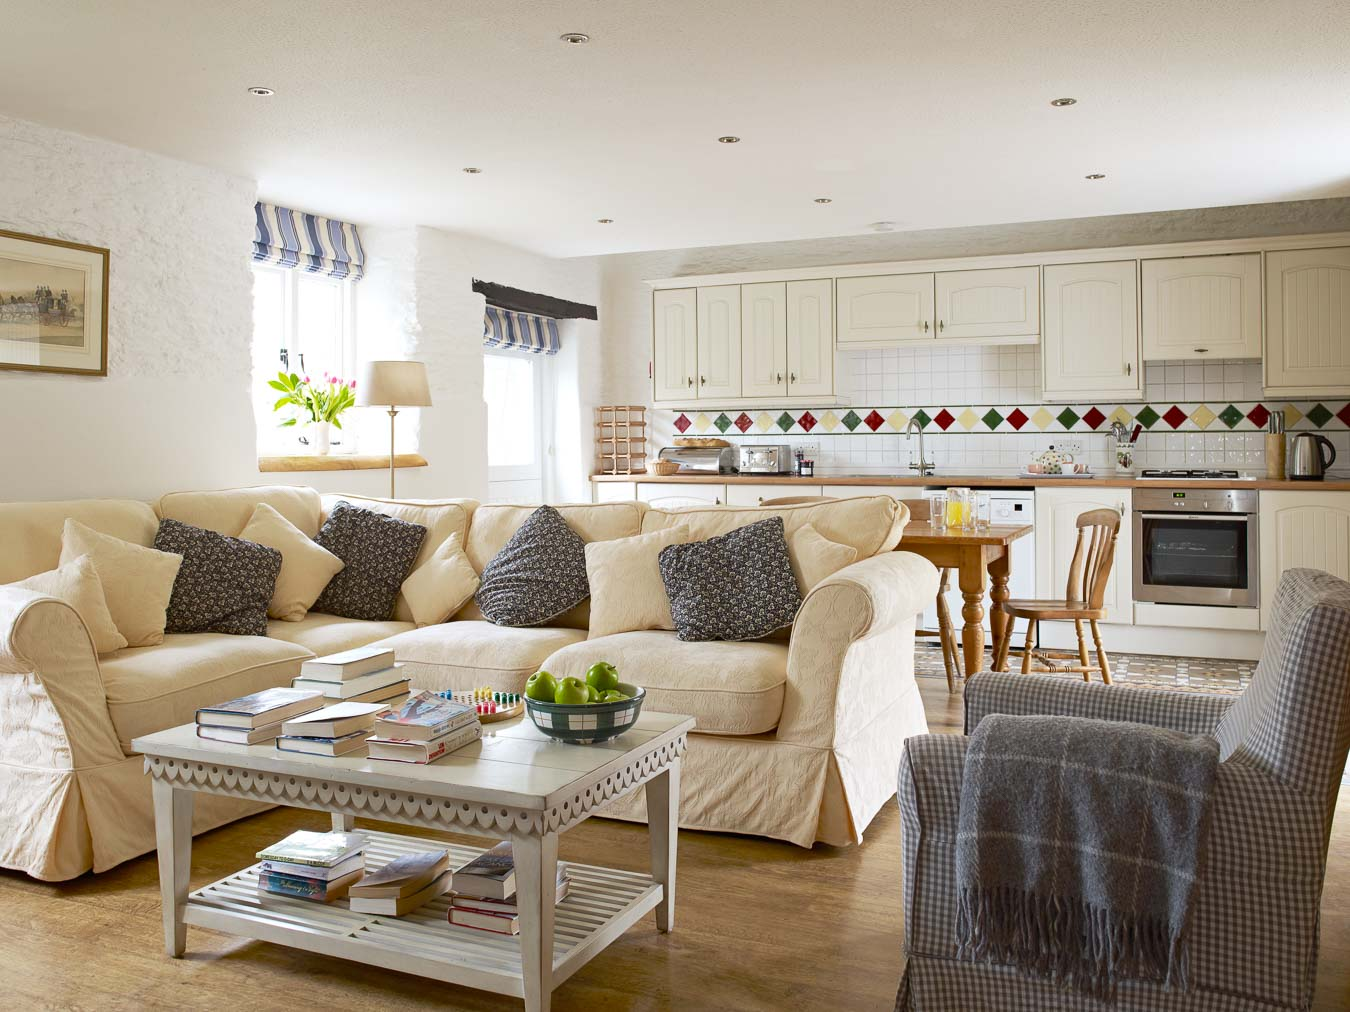 Stables cottage is light and airy and has open plan down stairs. With soft yellow corner sofa and large farmhouse table to seat six this space is perfect for all the family.